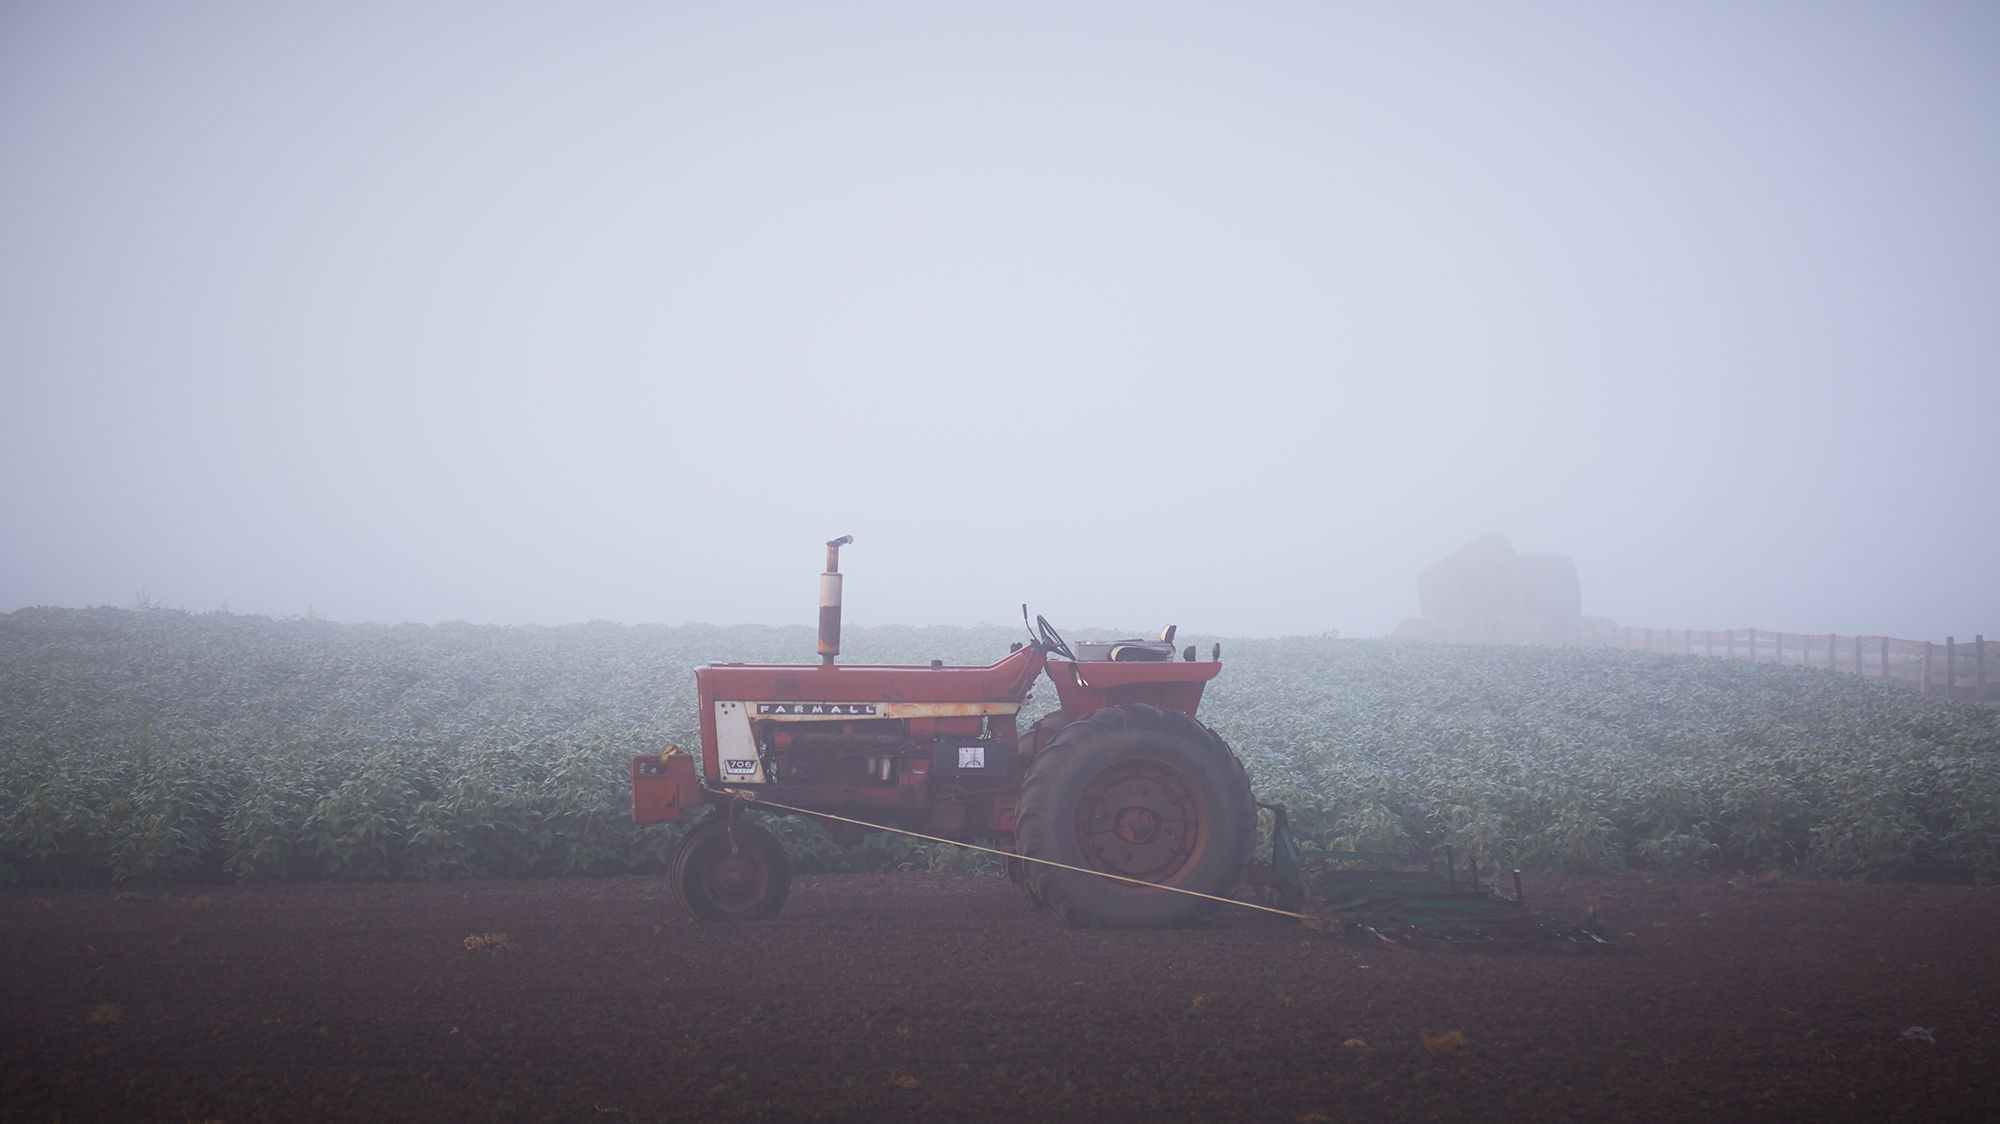 Mist rises on a suburban farm.